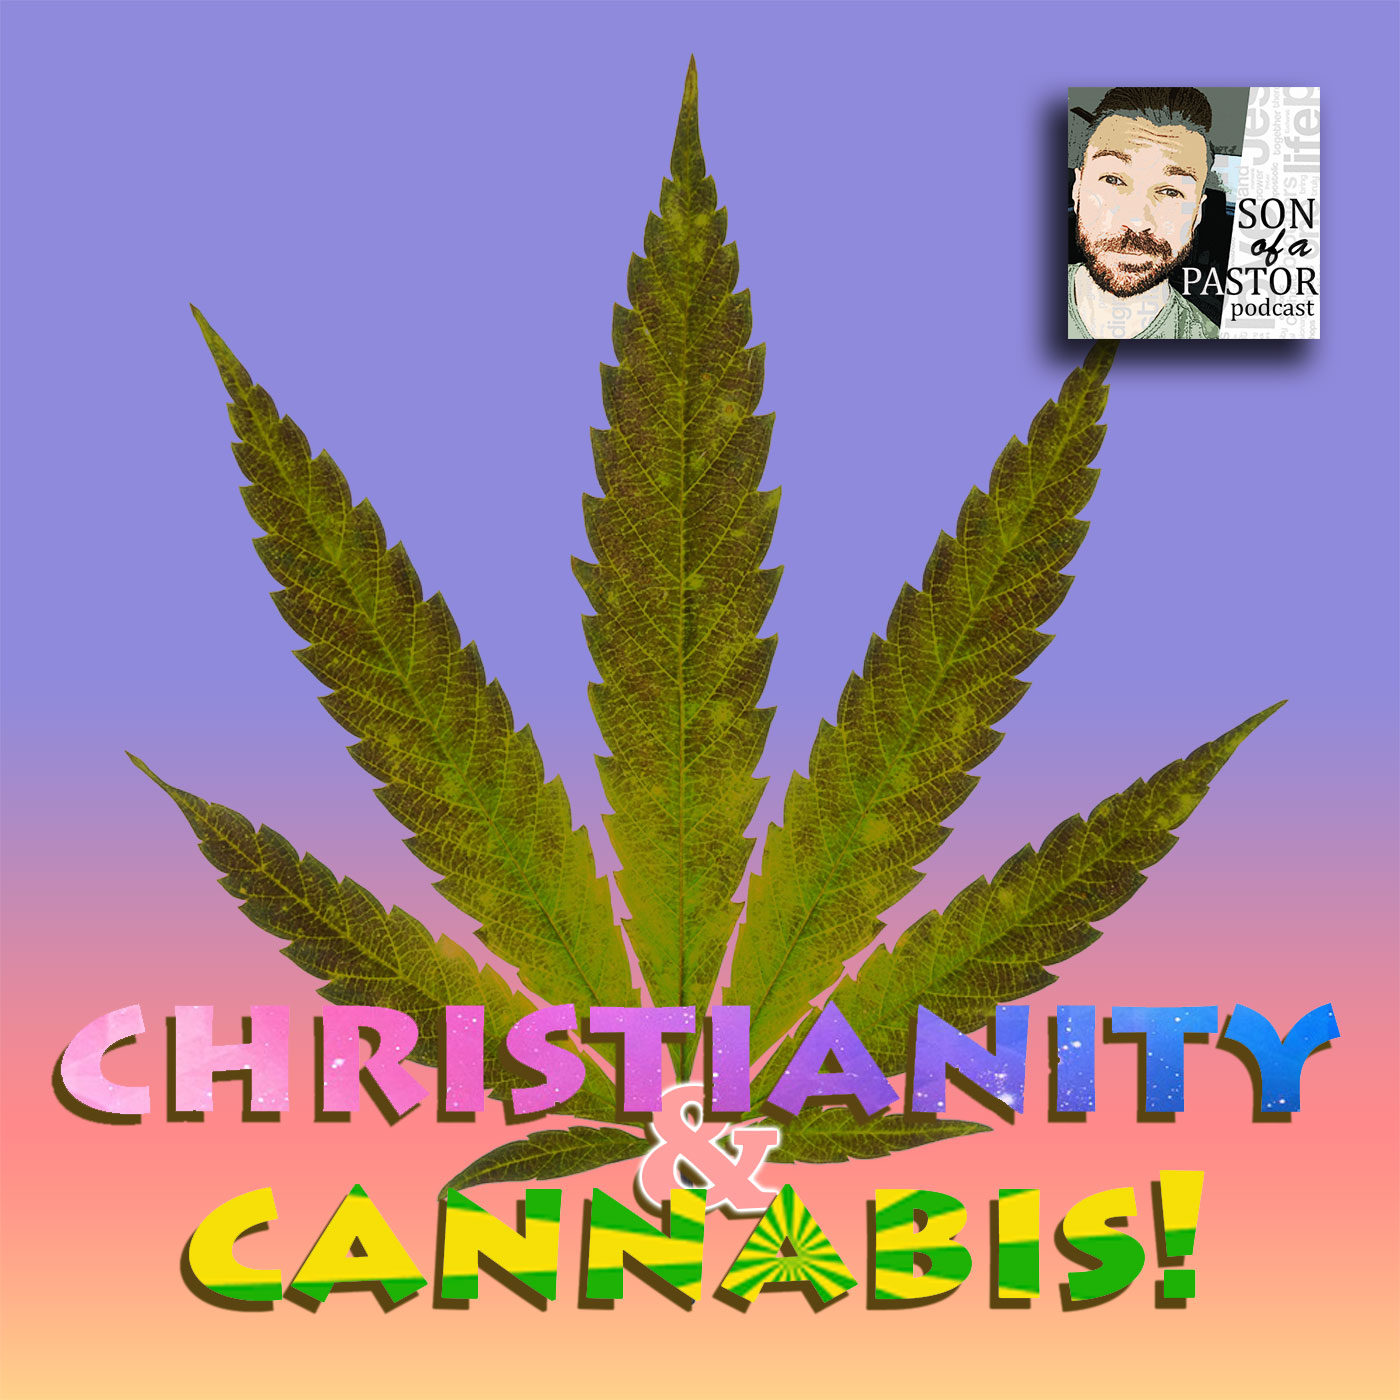 Christianity and Cannabis! - Episode 28